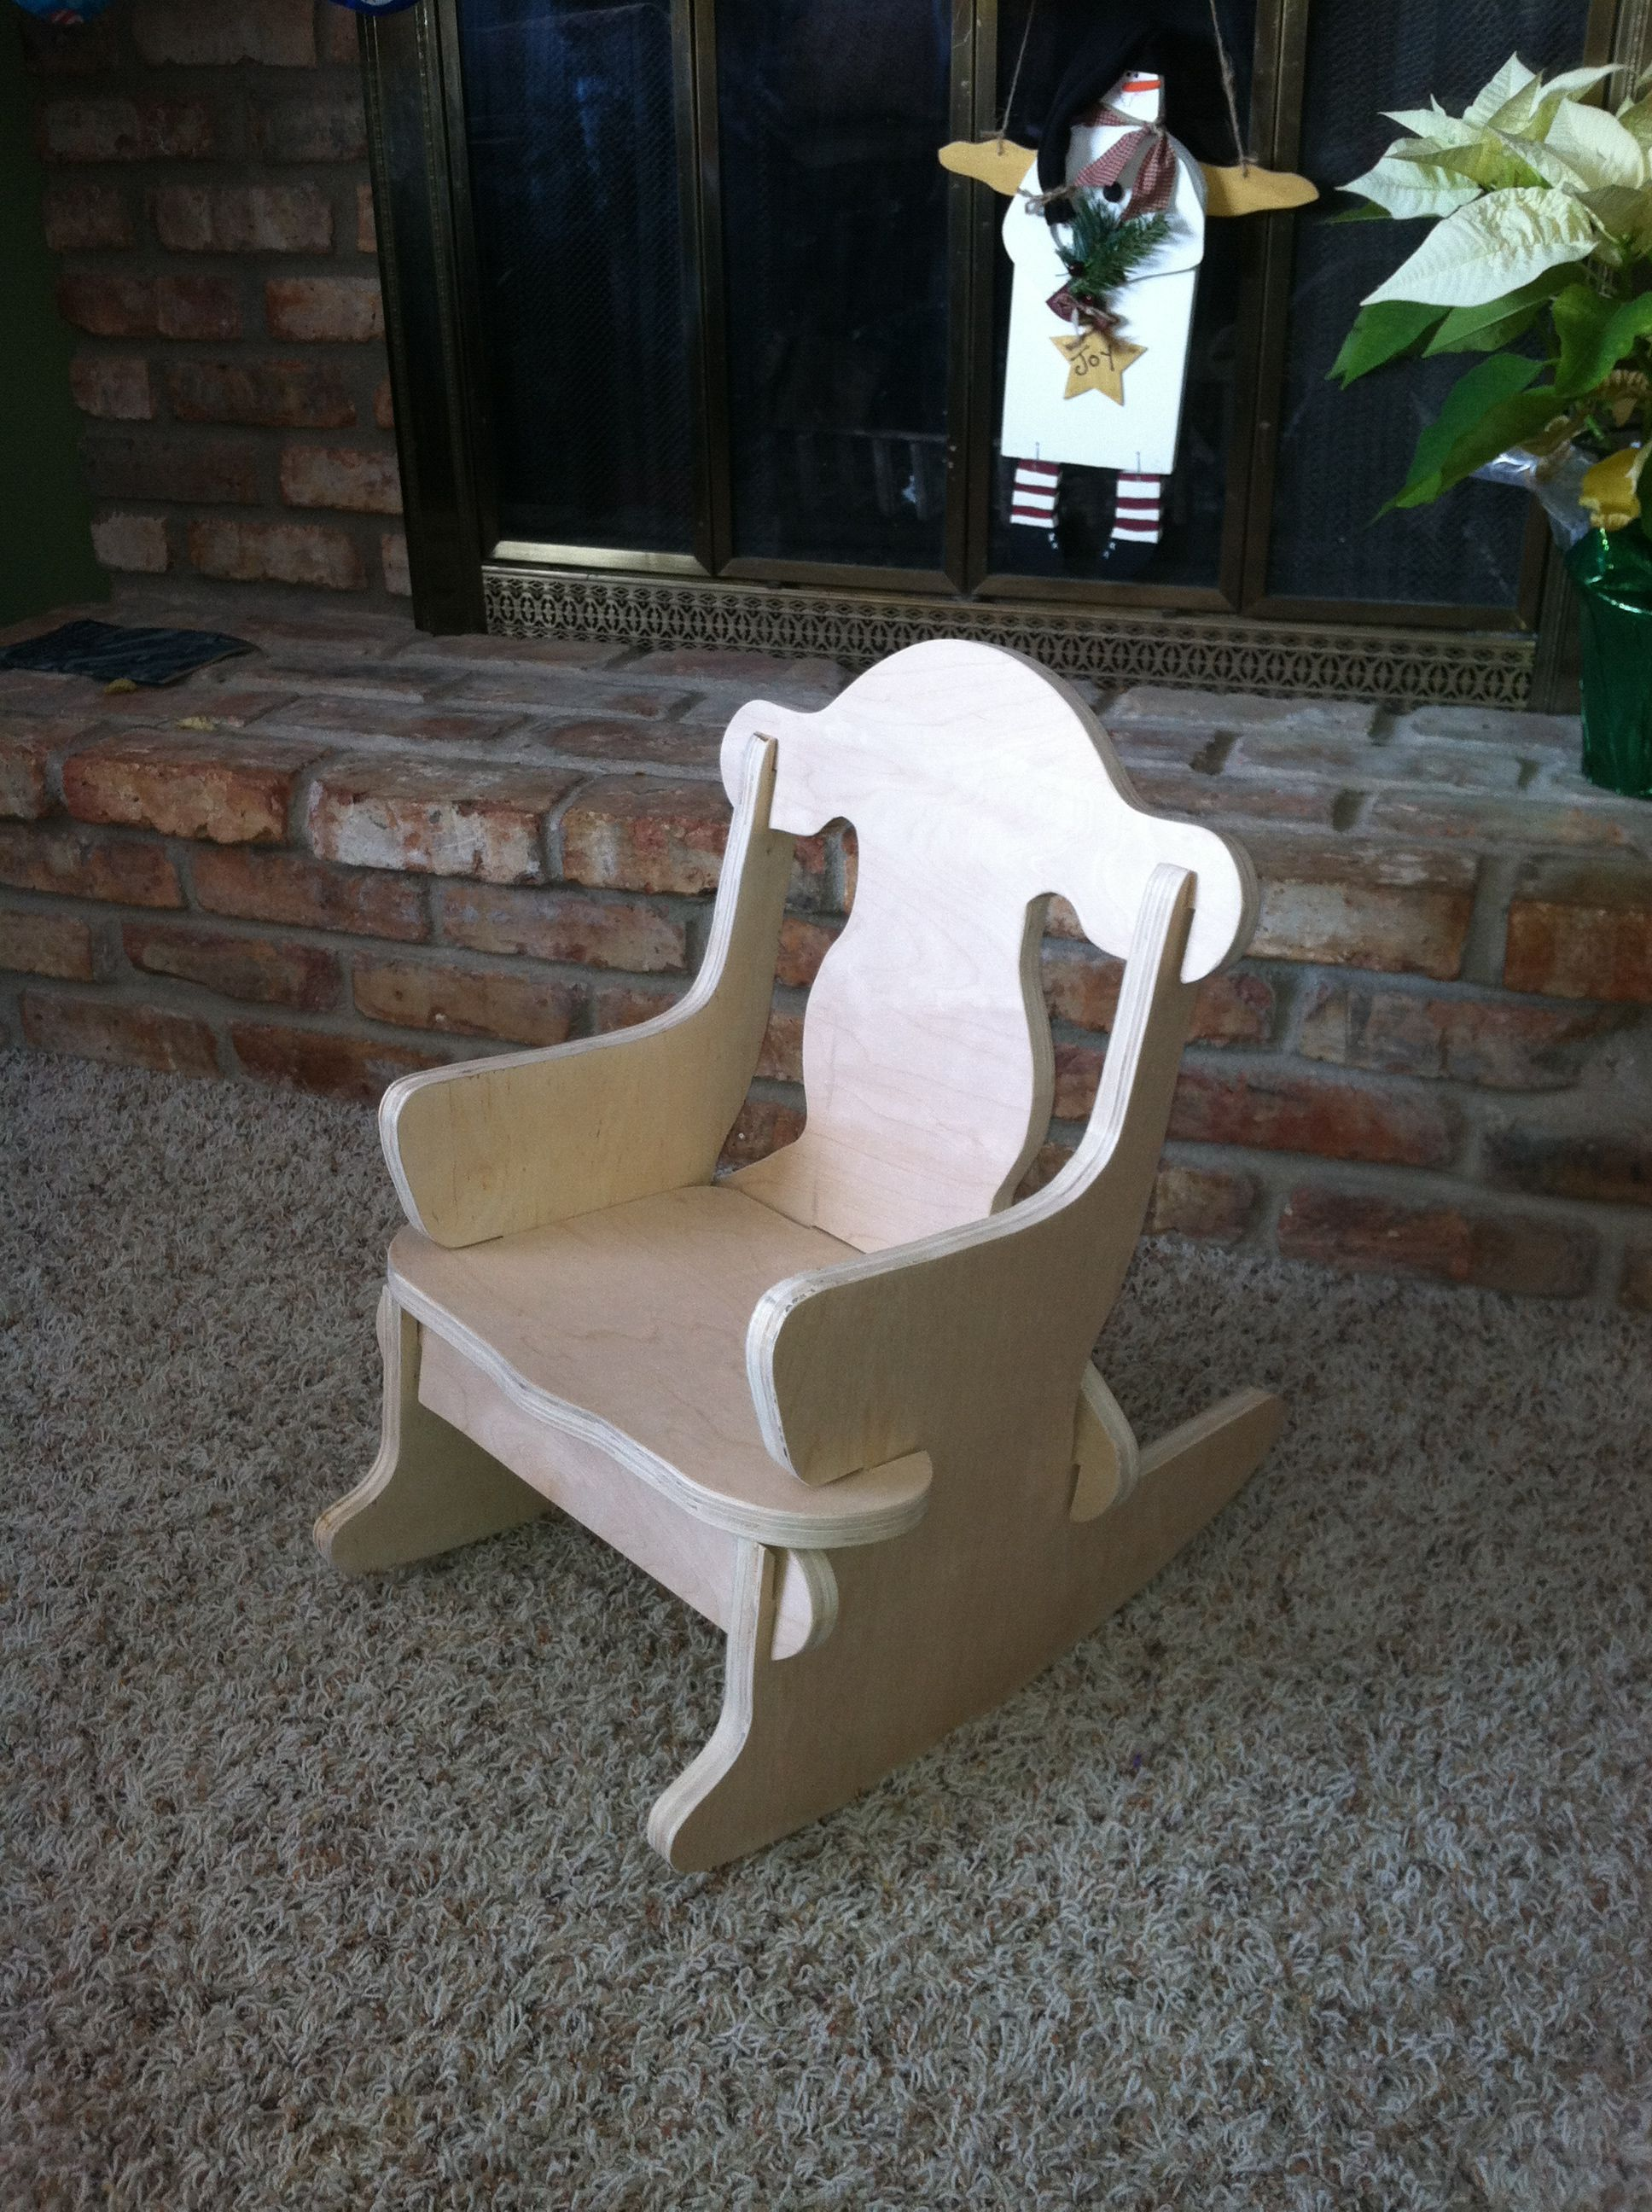 Prime Childs Puzzle Chair No Nails Are Needed Wooden Puzzles Uwap Interior Chair Design Uwaporg